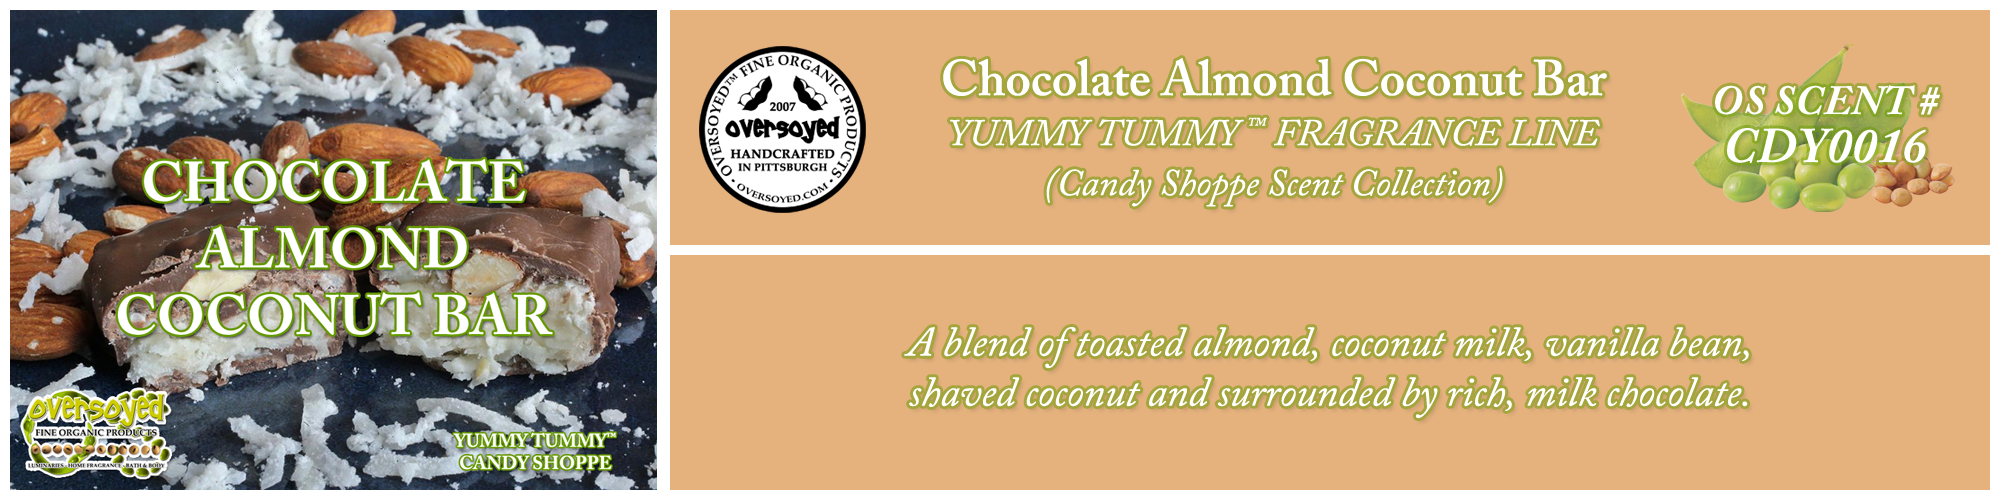 Chocolate Almond Coconut Bar Handcrafted Products Collection